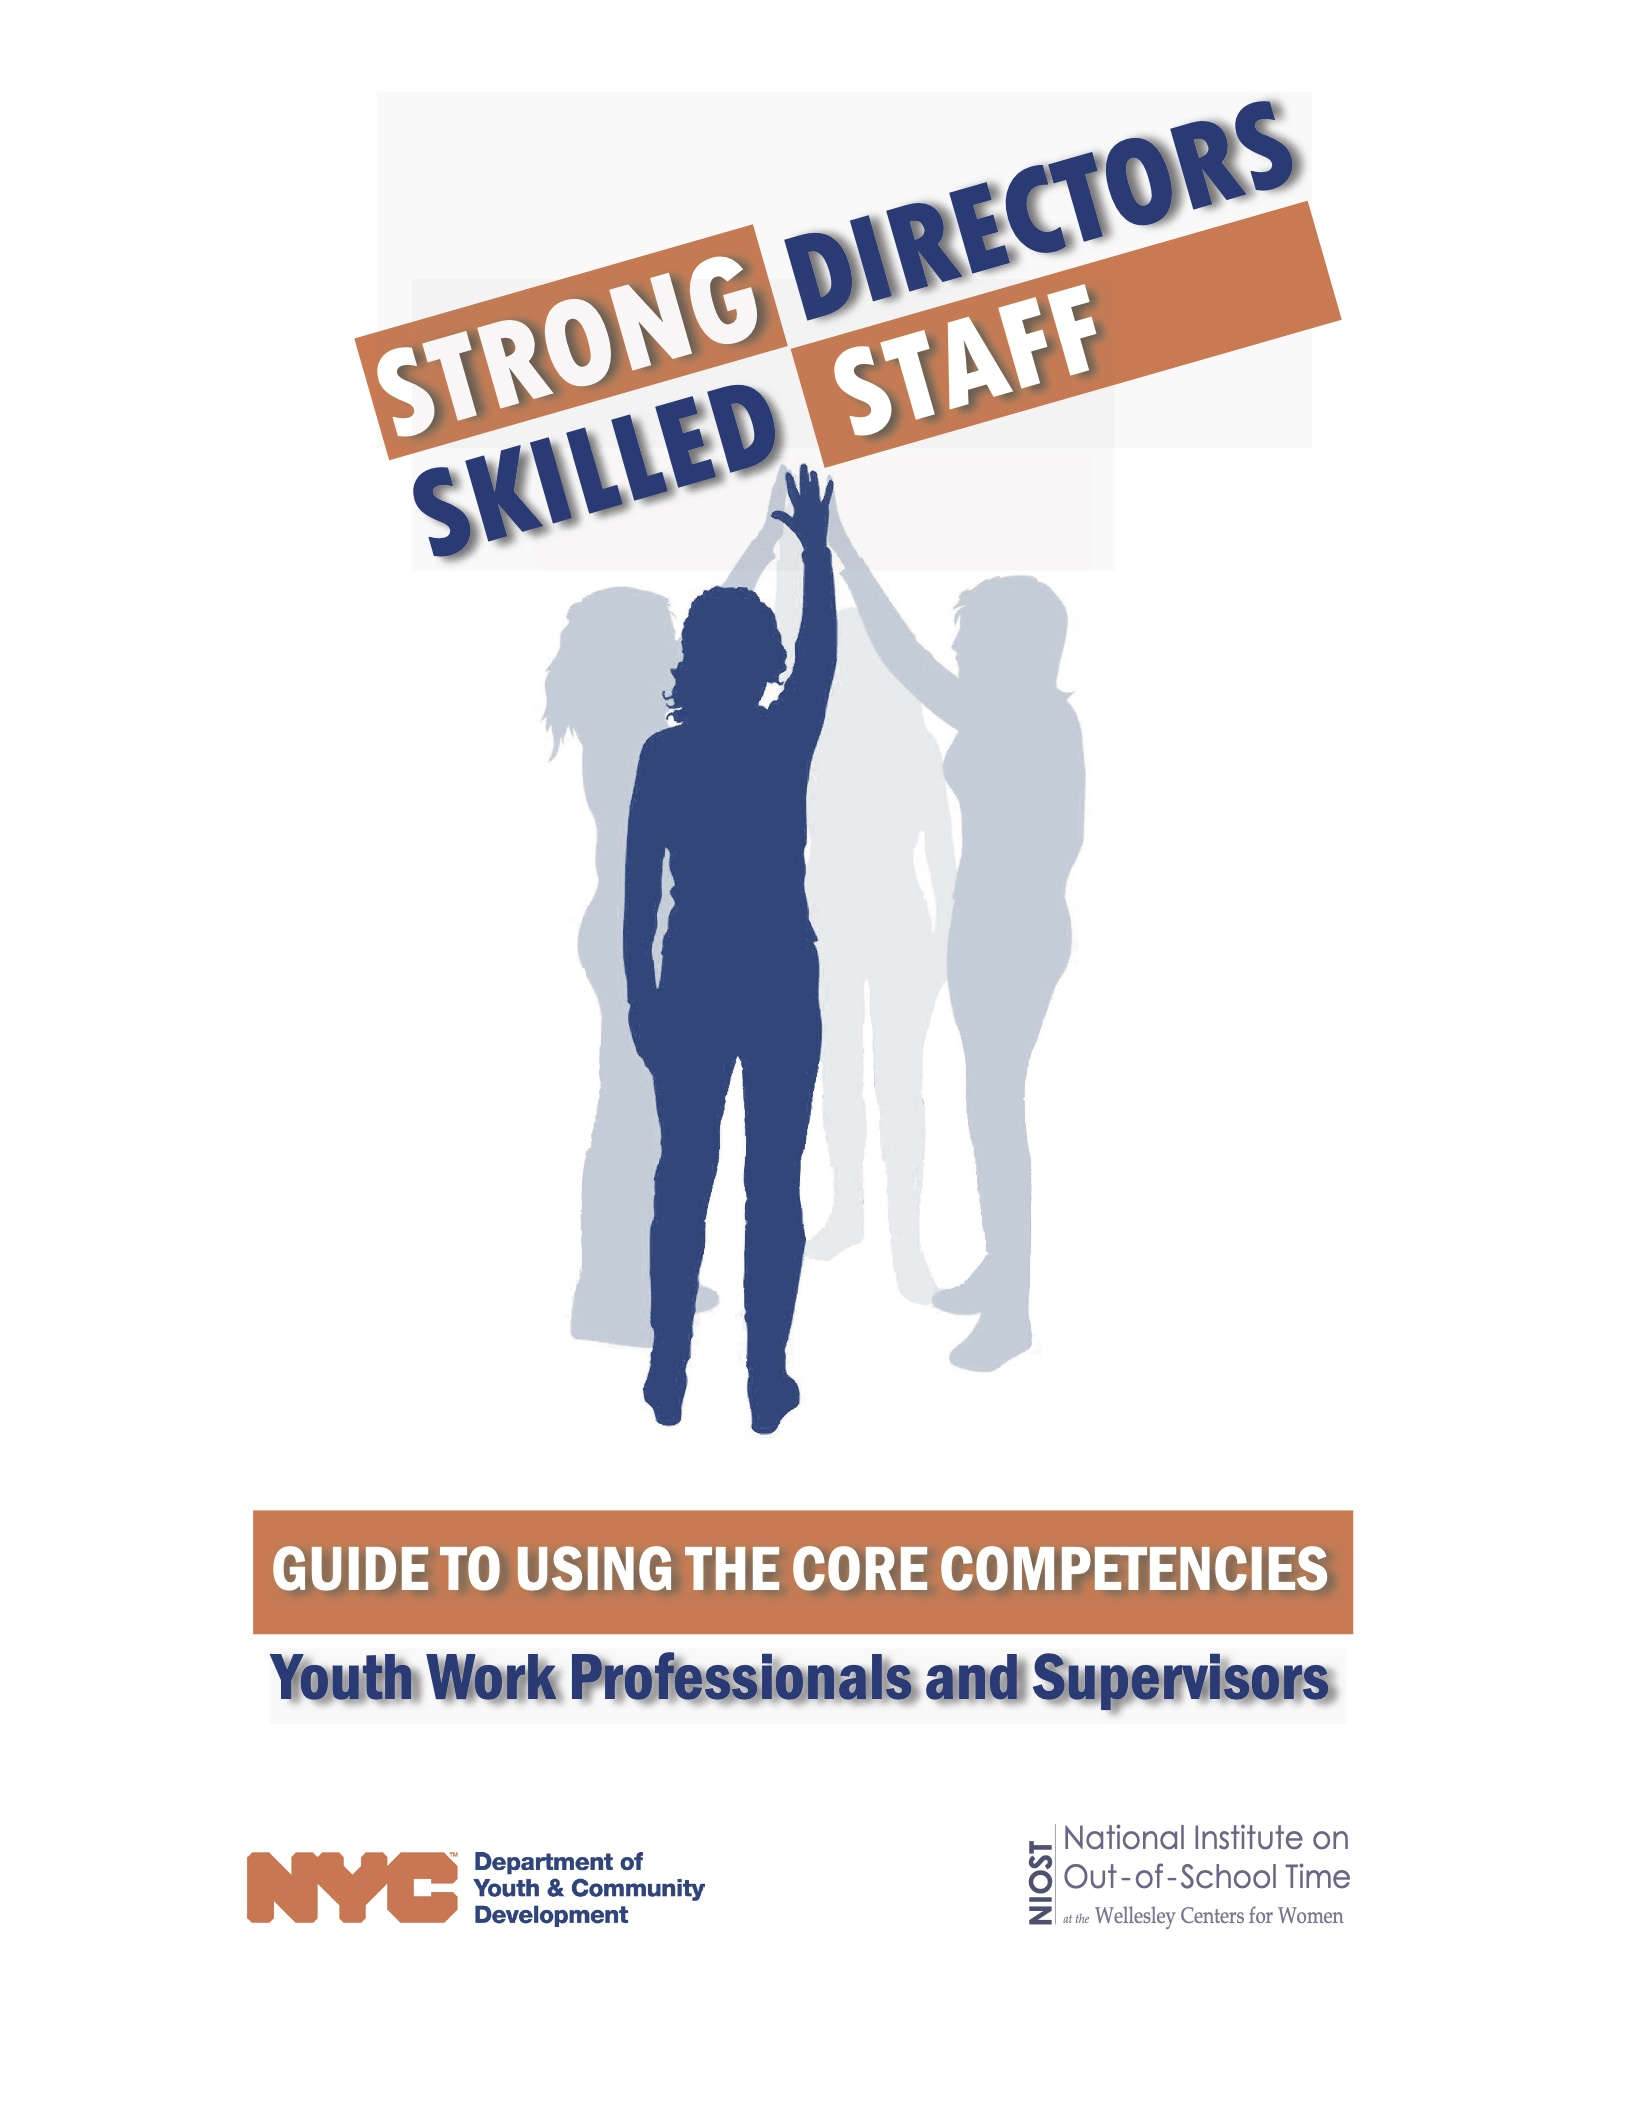 Strong-Directors-Skilled-Staff-Guide-to-Using-the-Core-Competencies-a